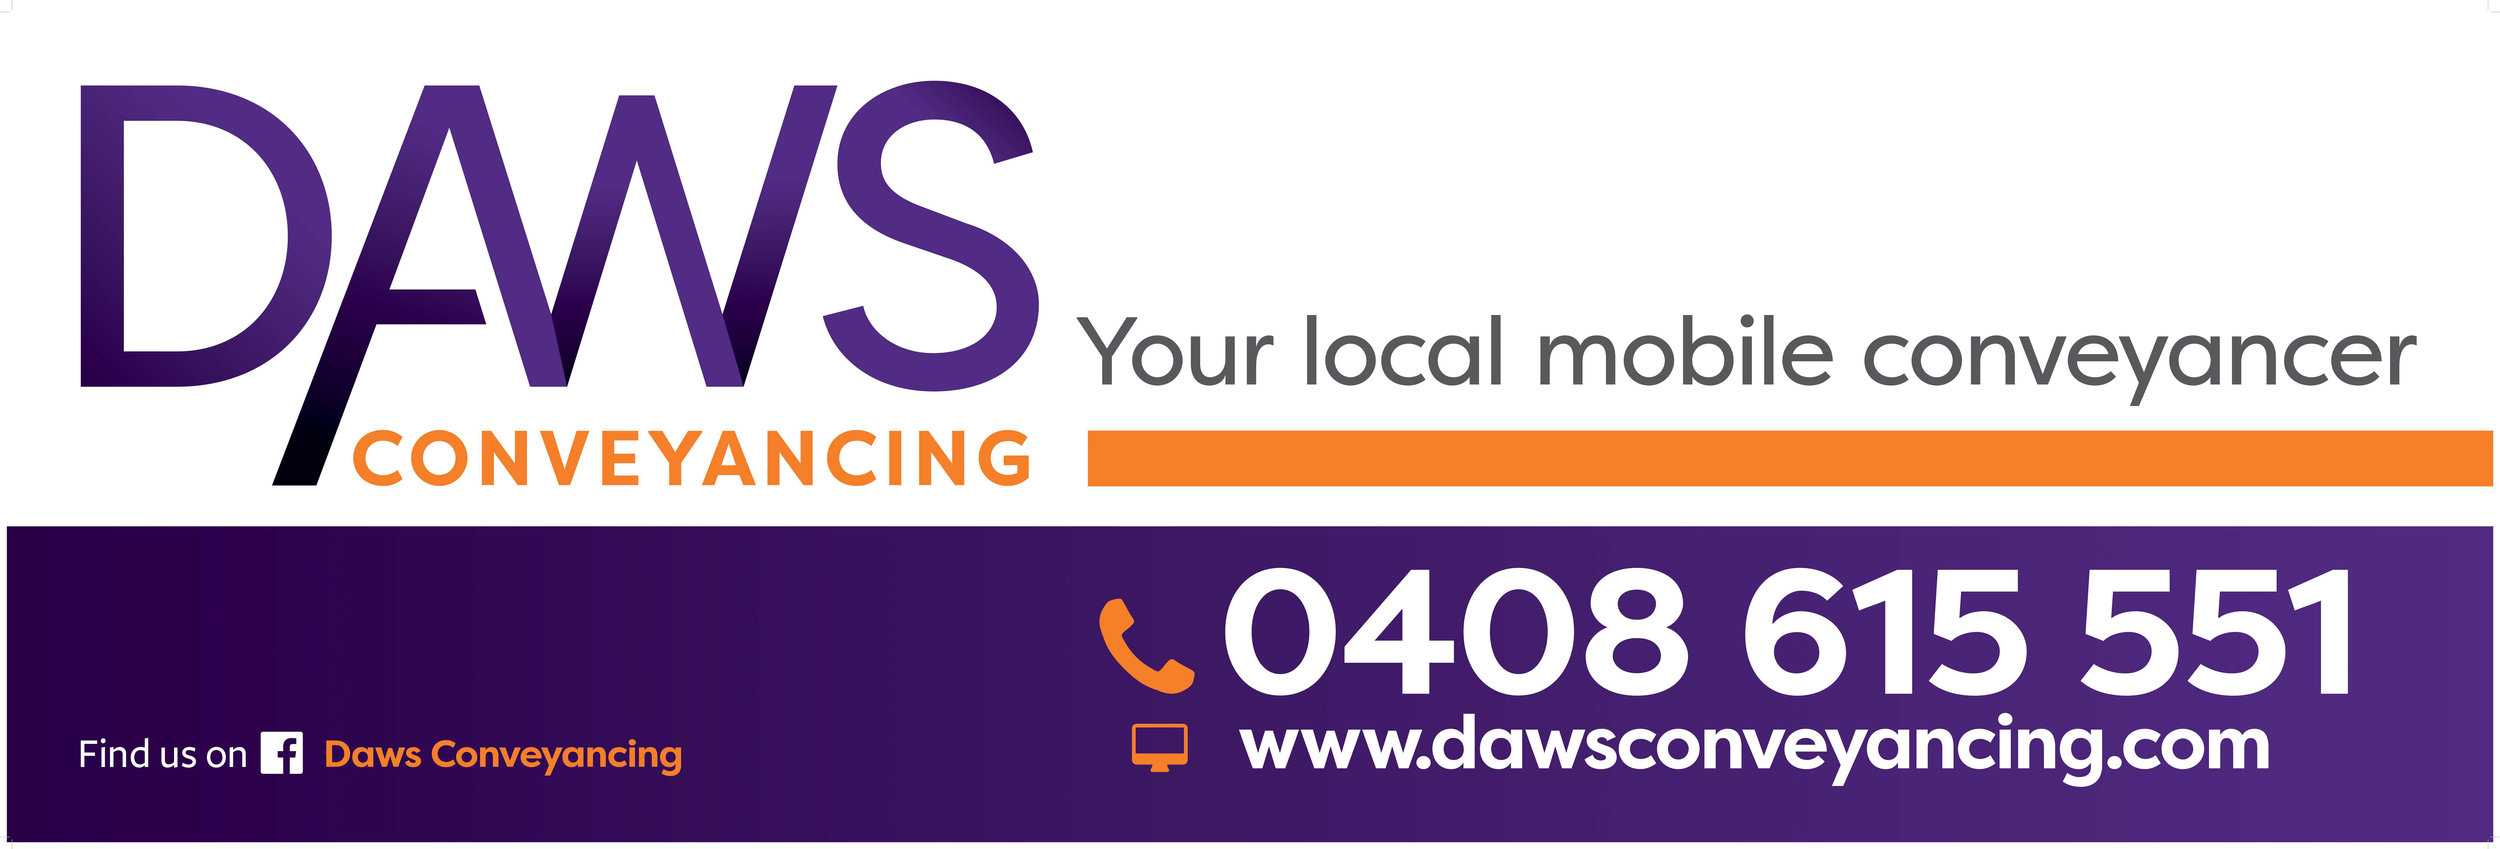 44258 DAWS Conveyancing PROOF.jpg